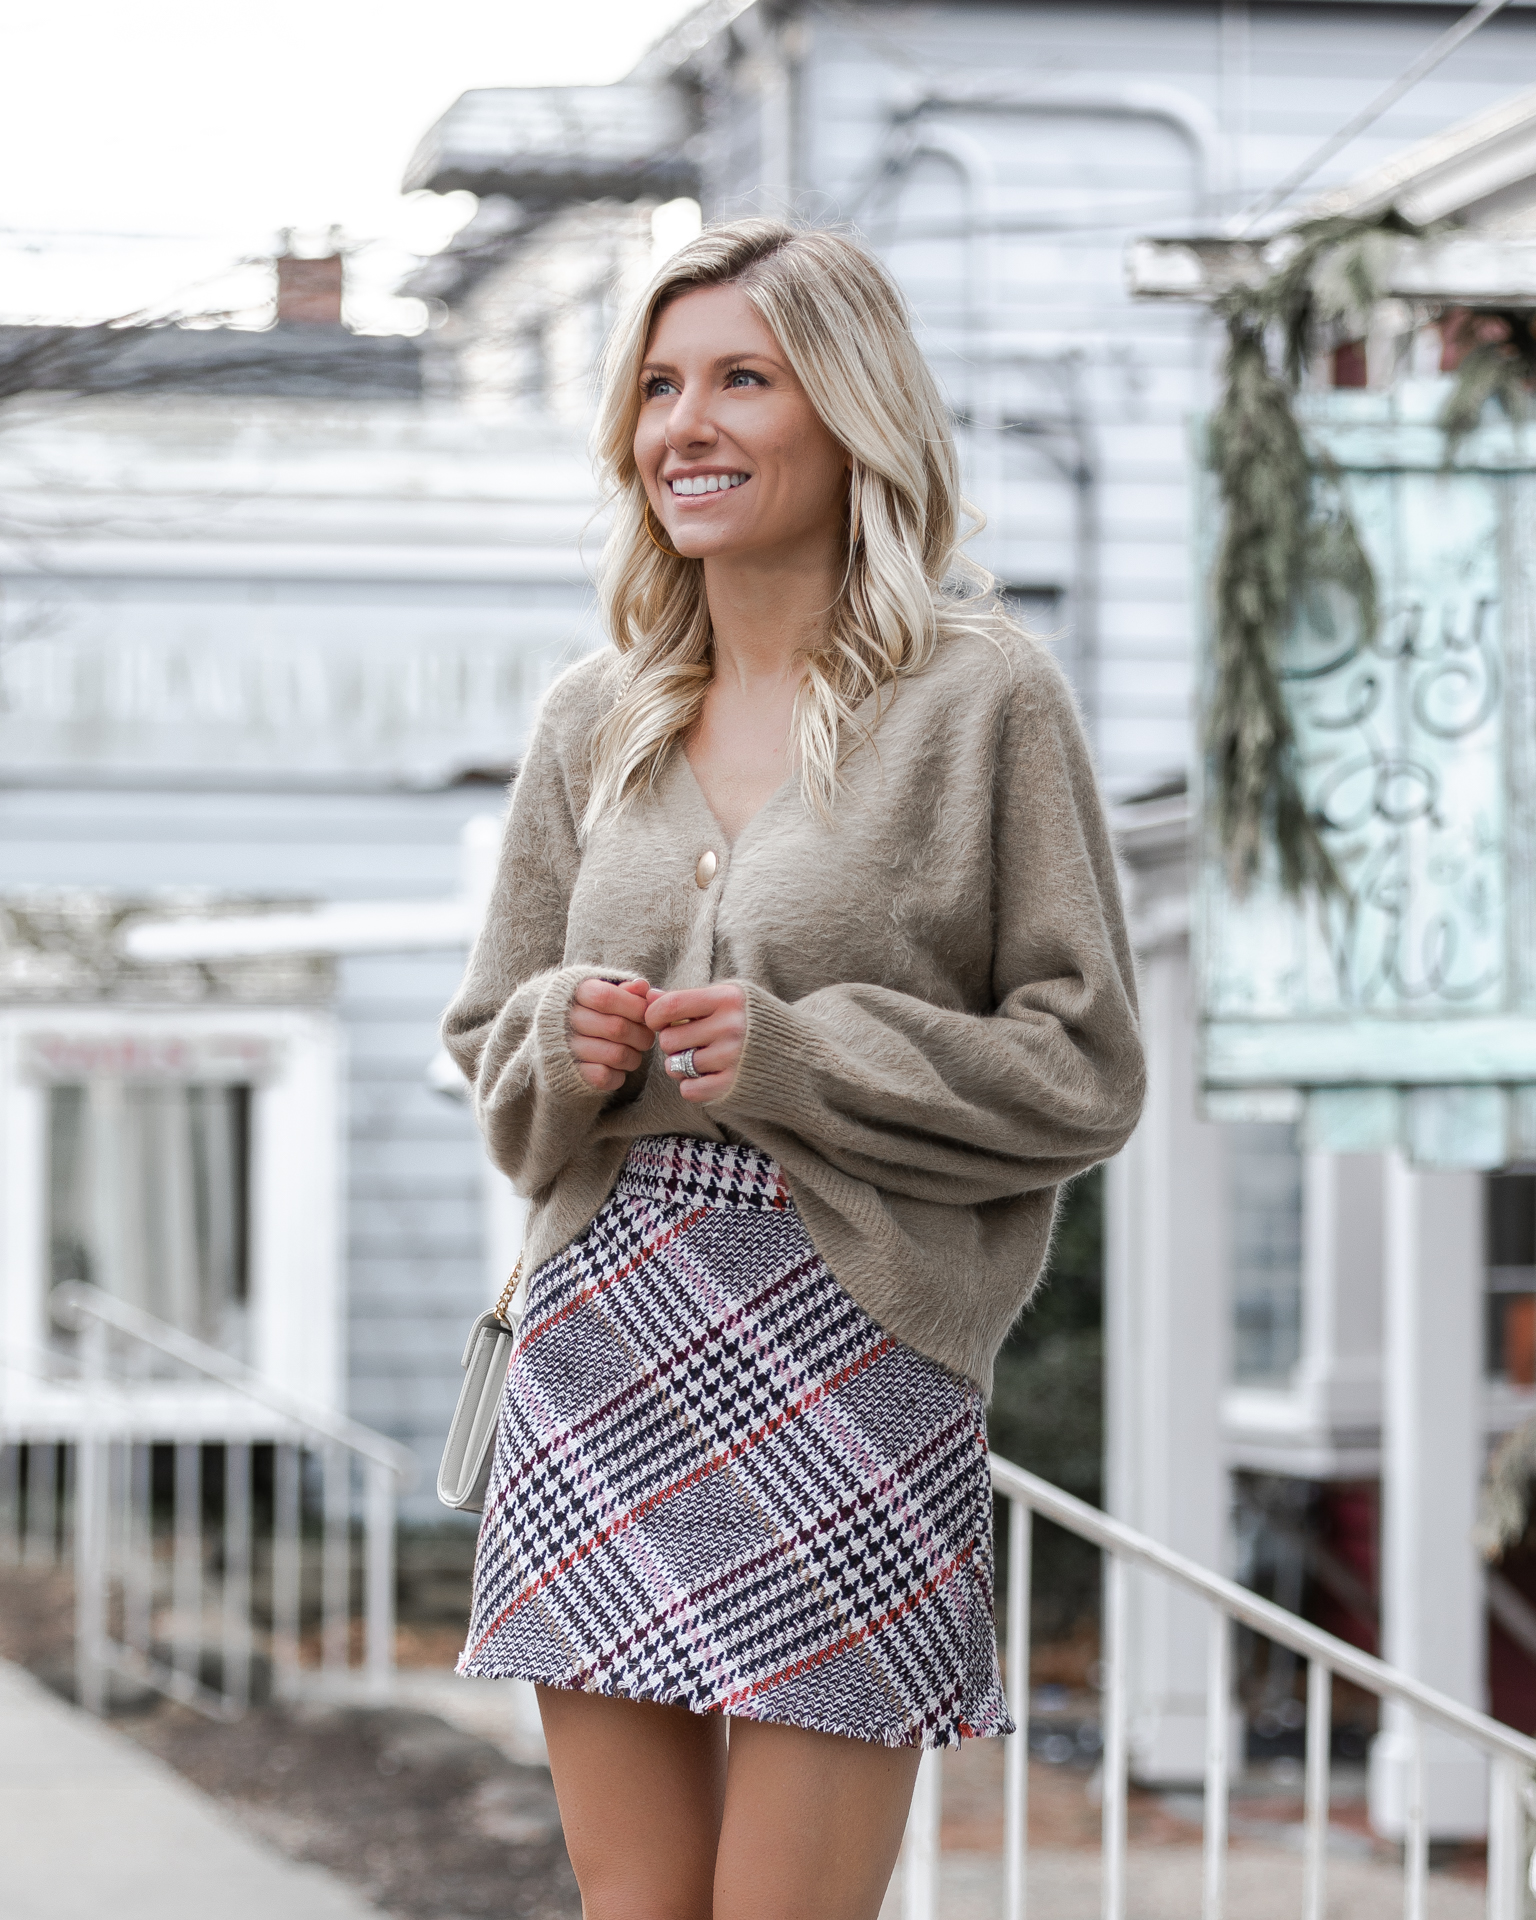 gold-button-sweater-and-mini-skirt-from-princess-polly-the-glamorous-gal